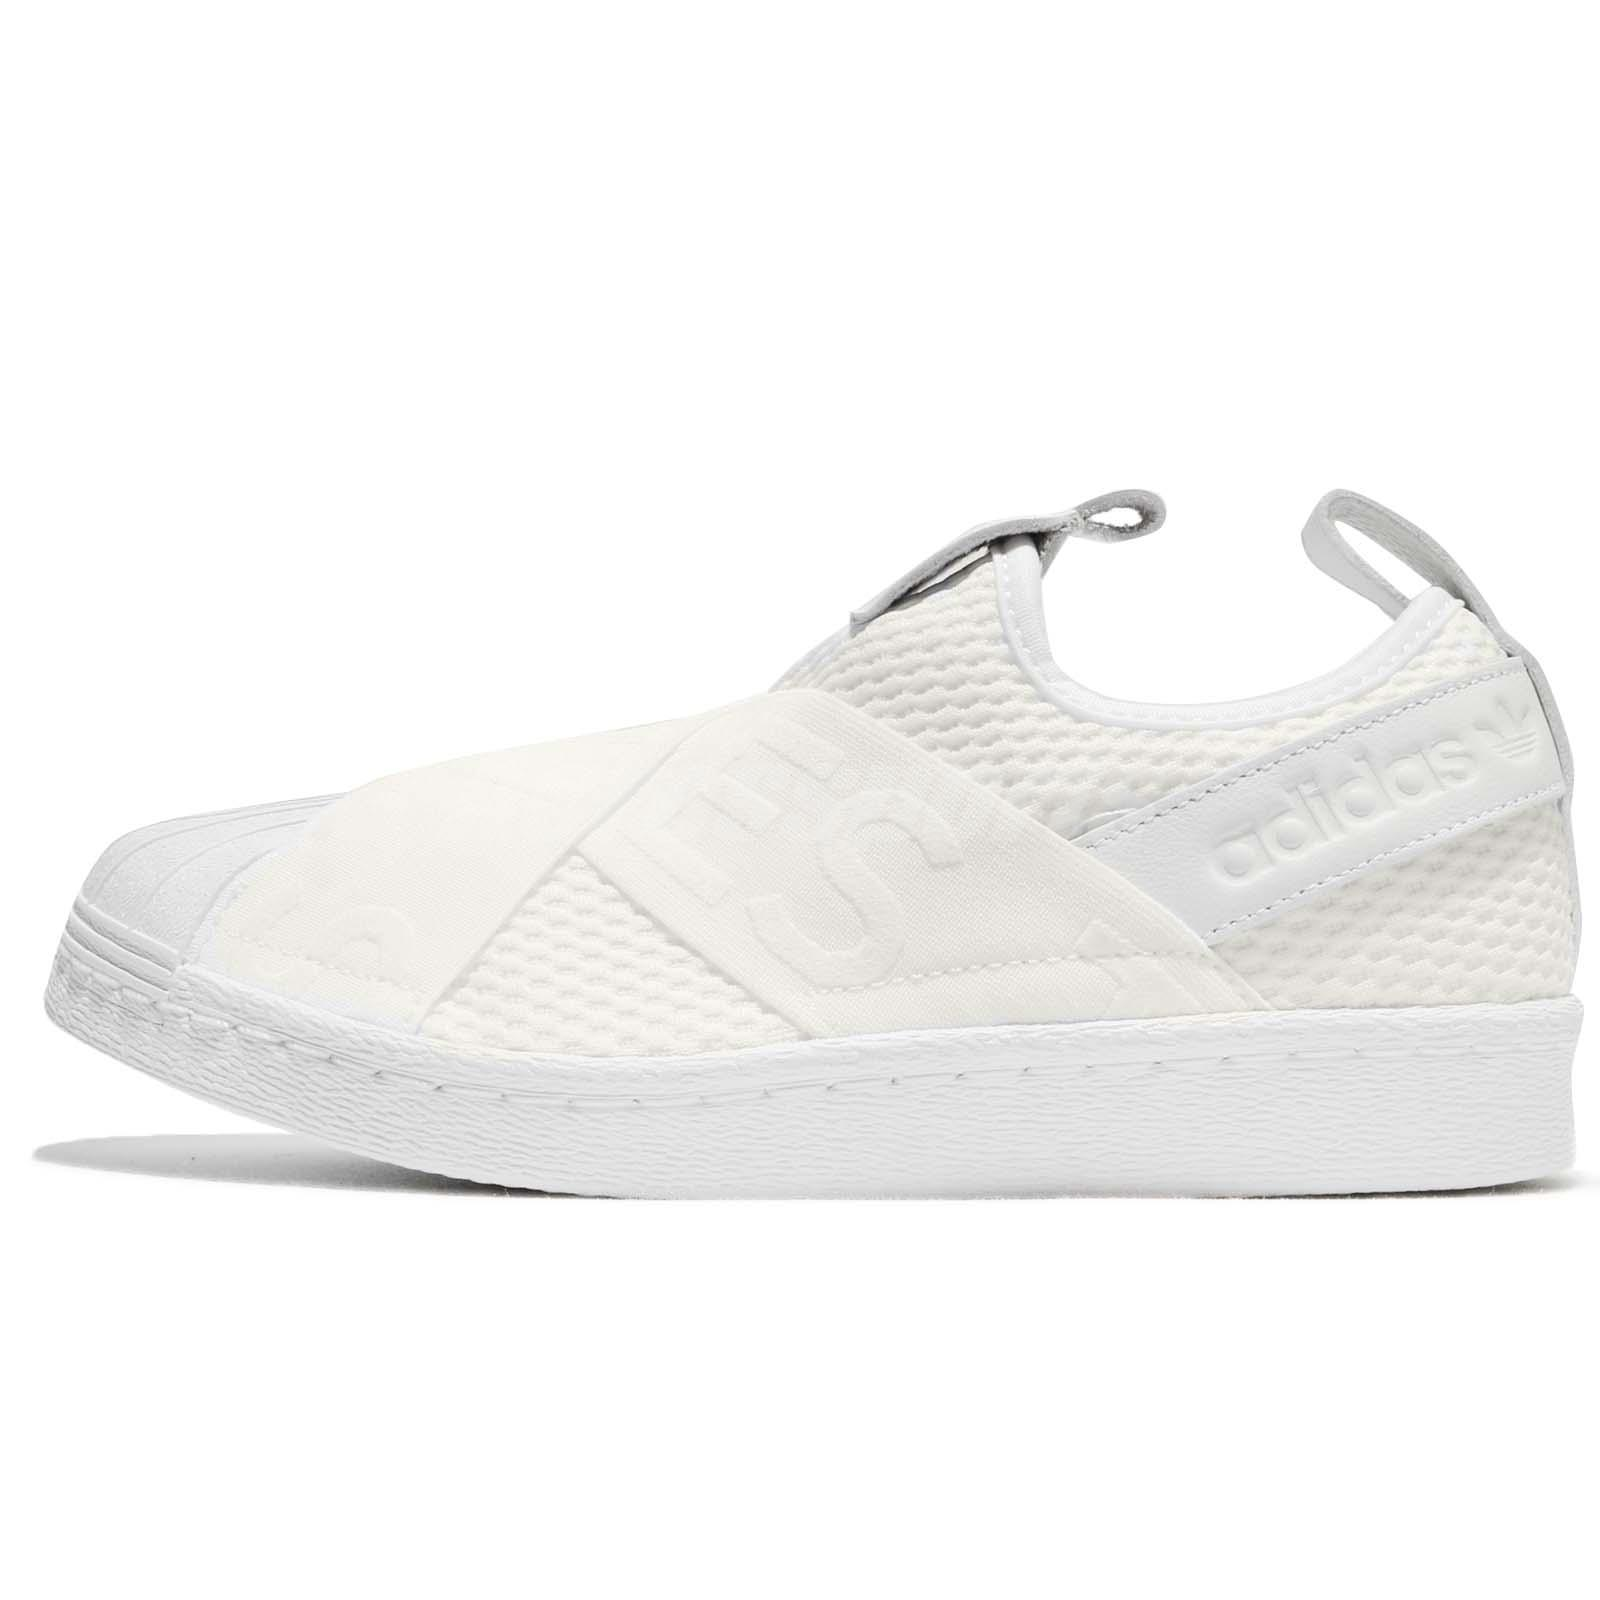 adidas Originals Superstar SlipOn W White Women Shoes Sneakers Trainers  CQ2381 7602cddfeb8c